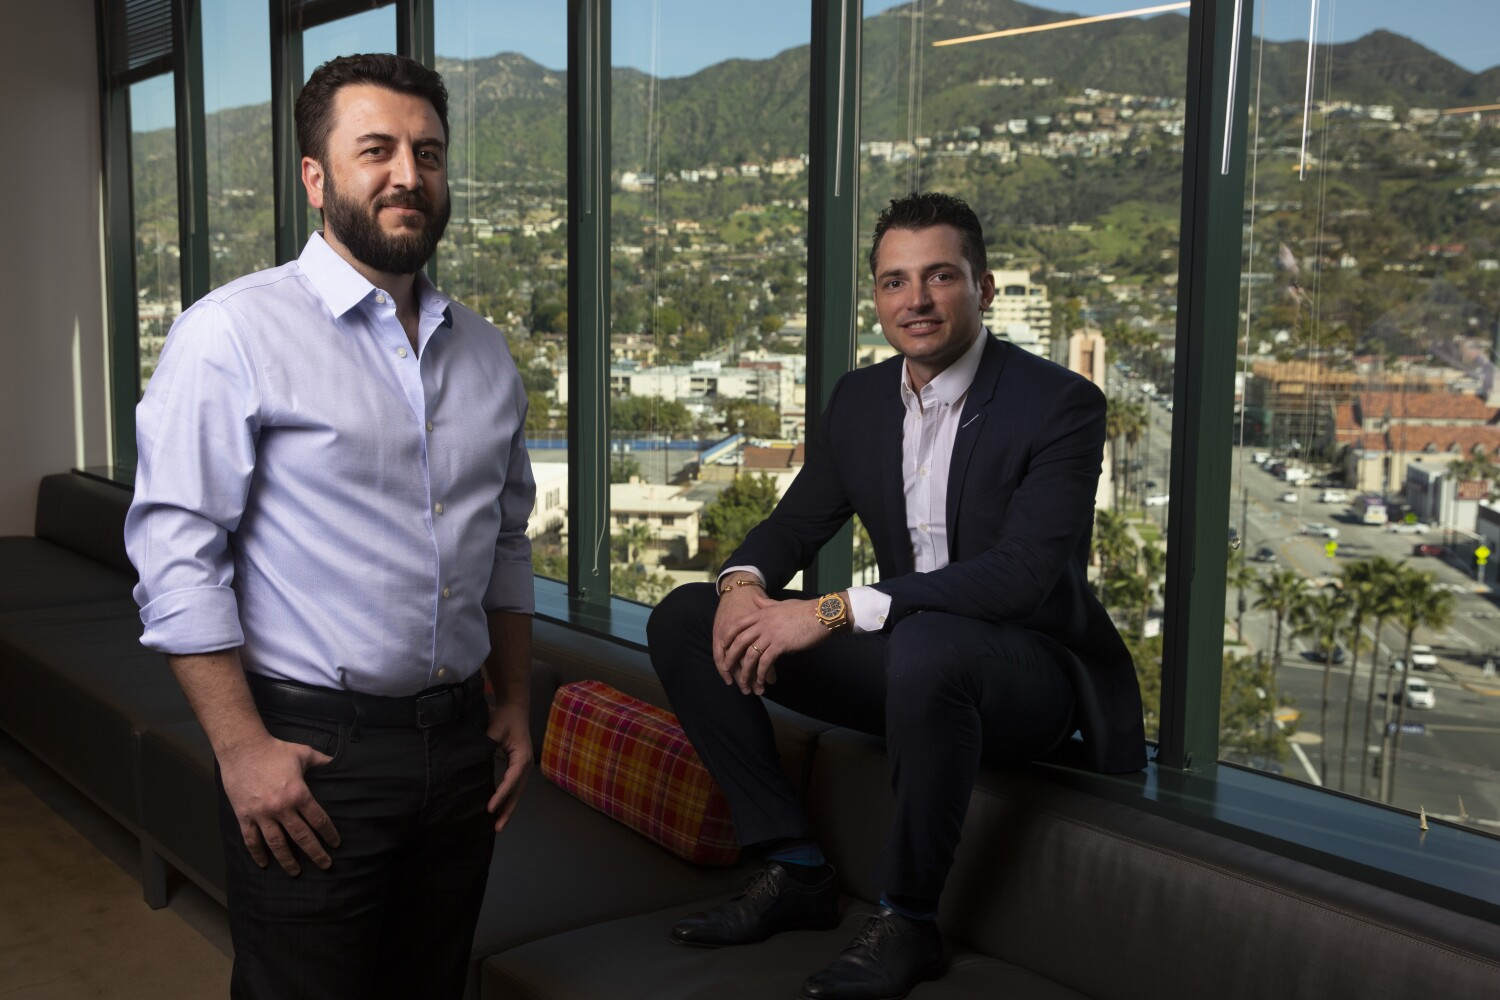 A blue-collar tech giant grows in Glendale